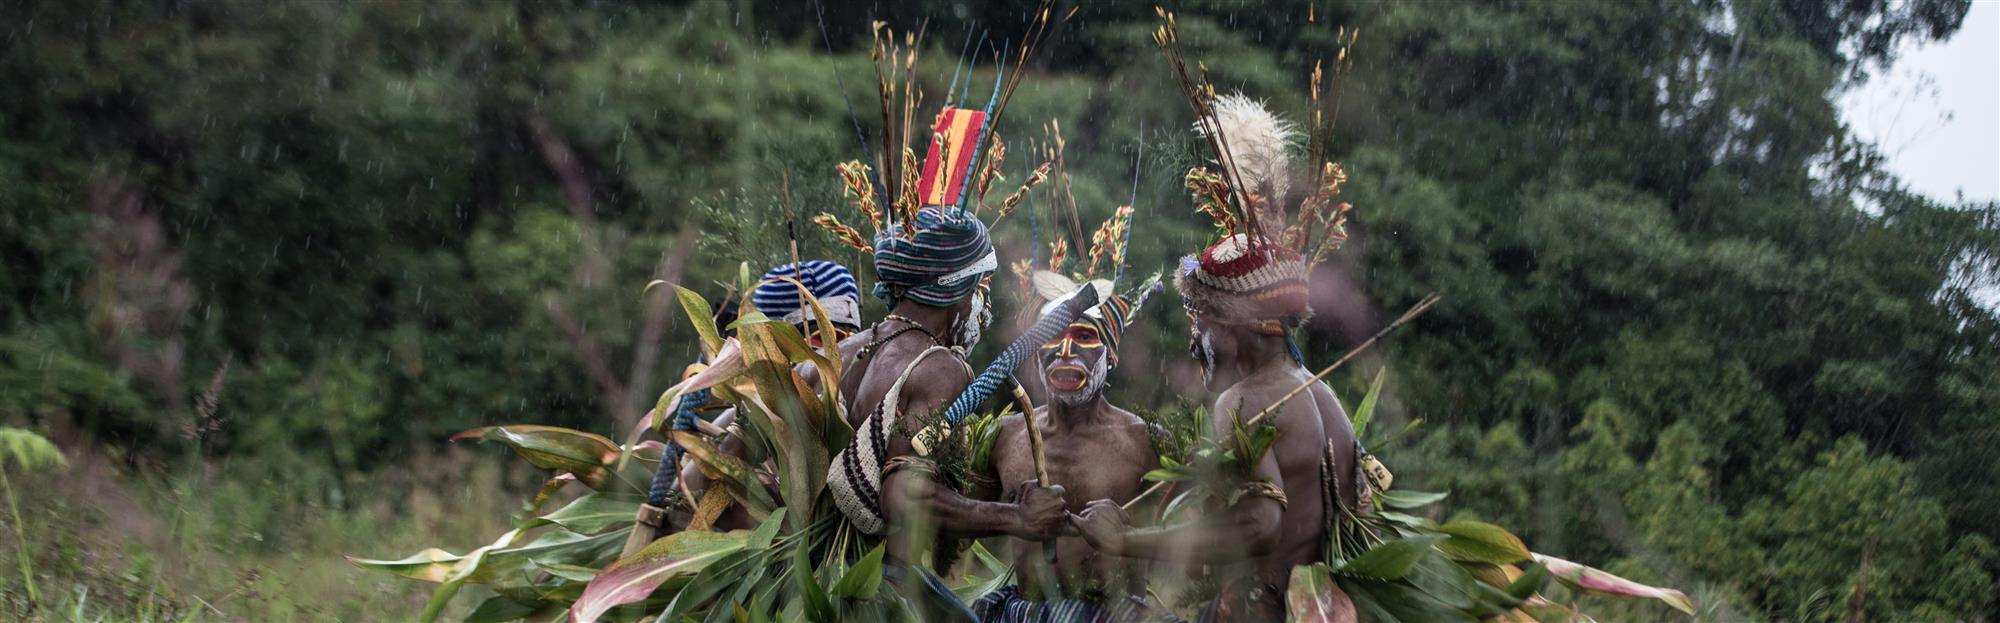 Remembering Papua New Guinea